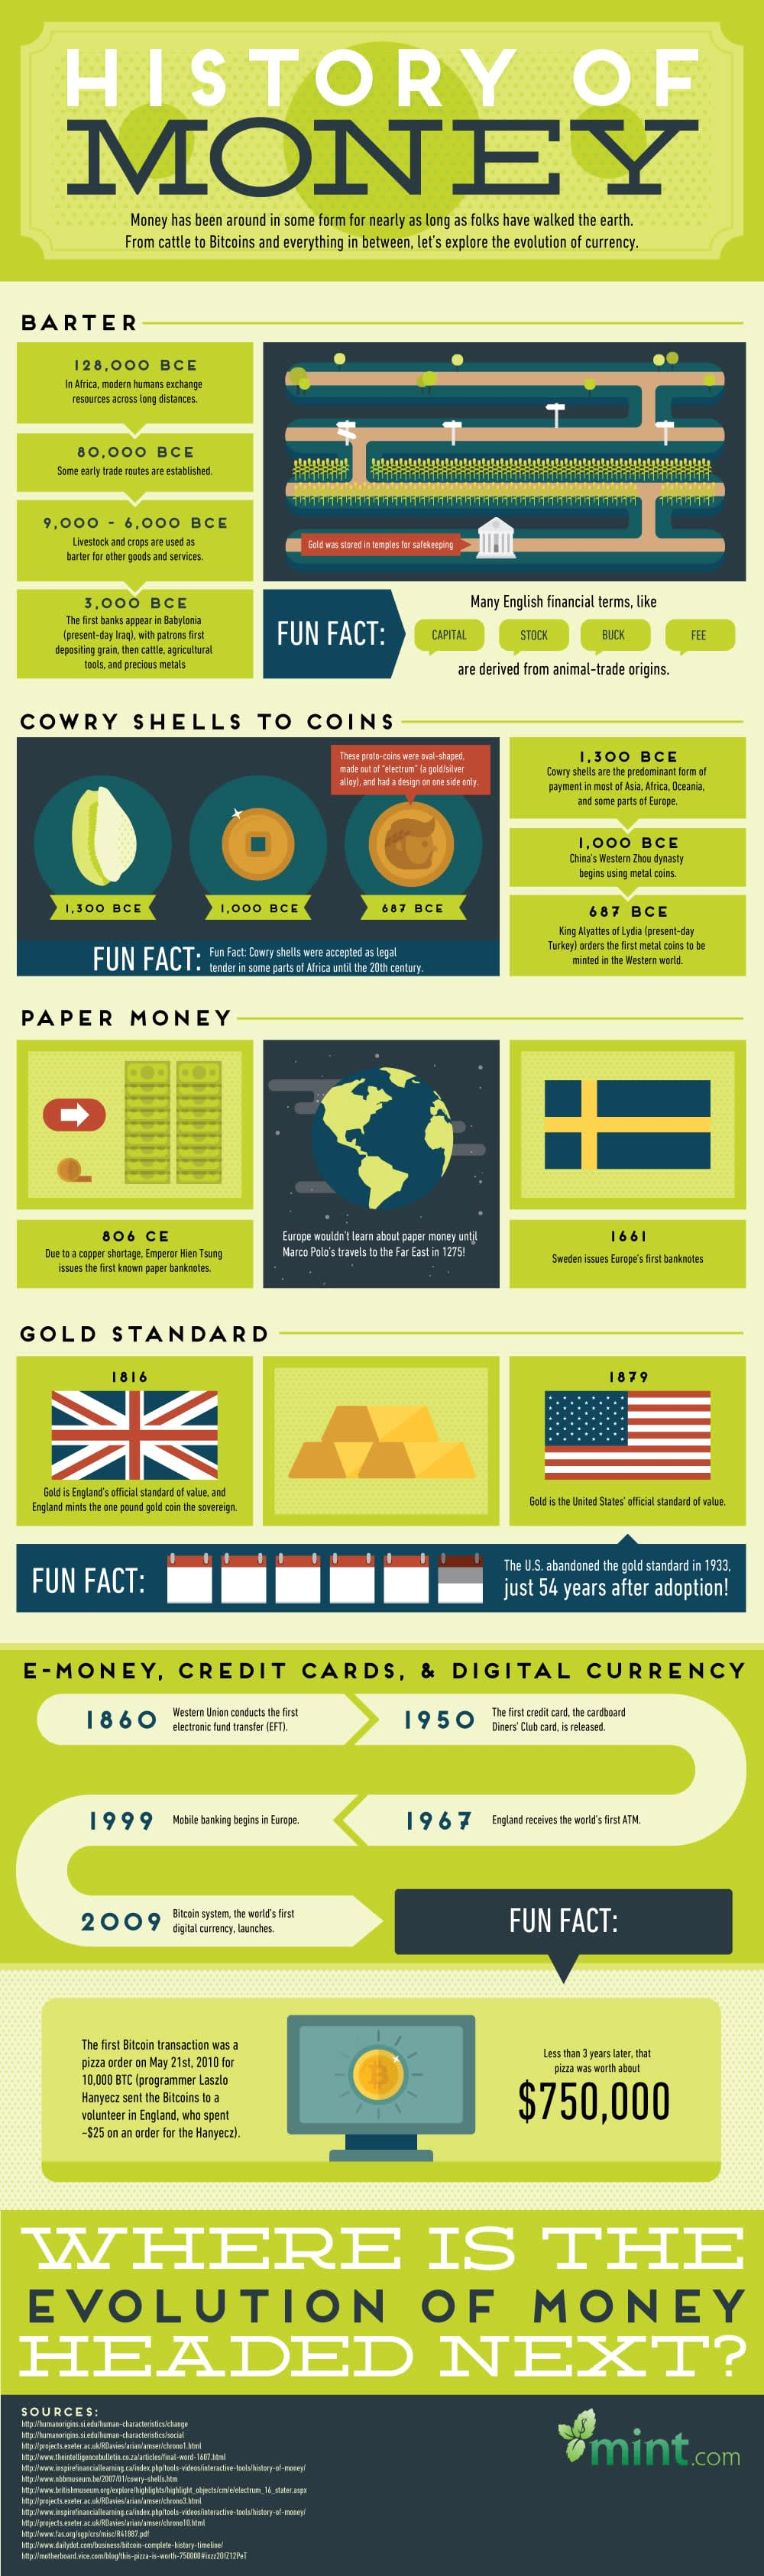 History of Money infographic